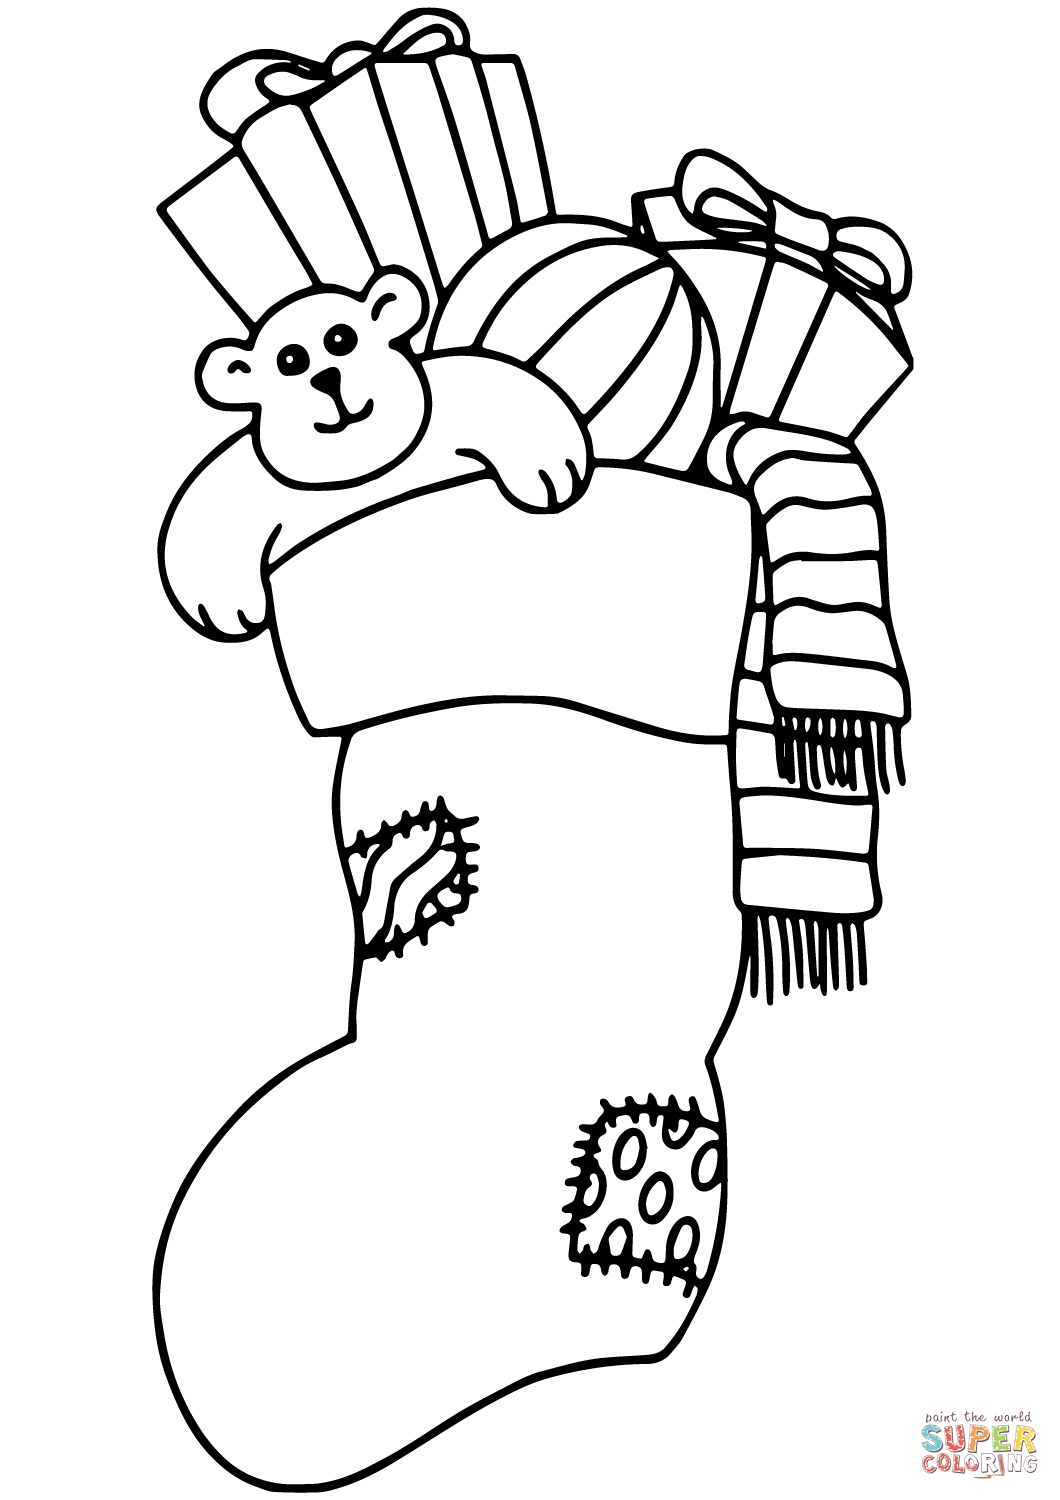 Christmas Stocking Filled With Ts Coloring Page